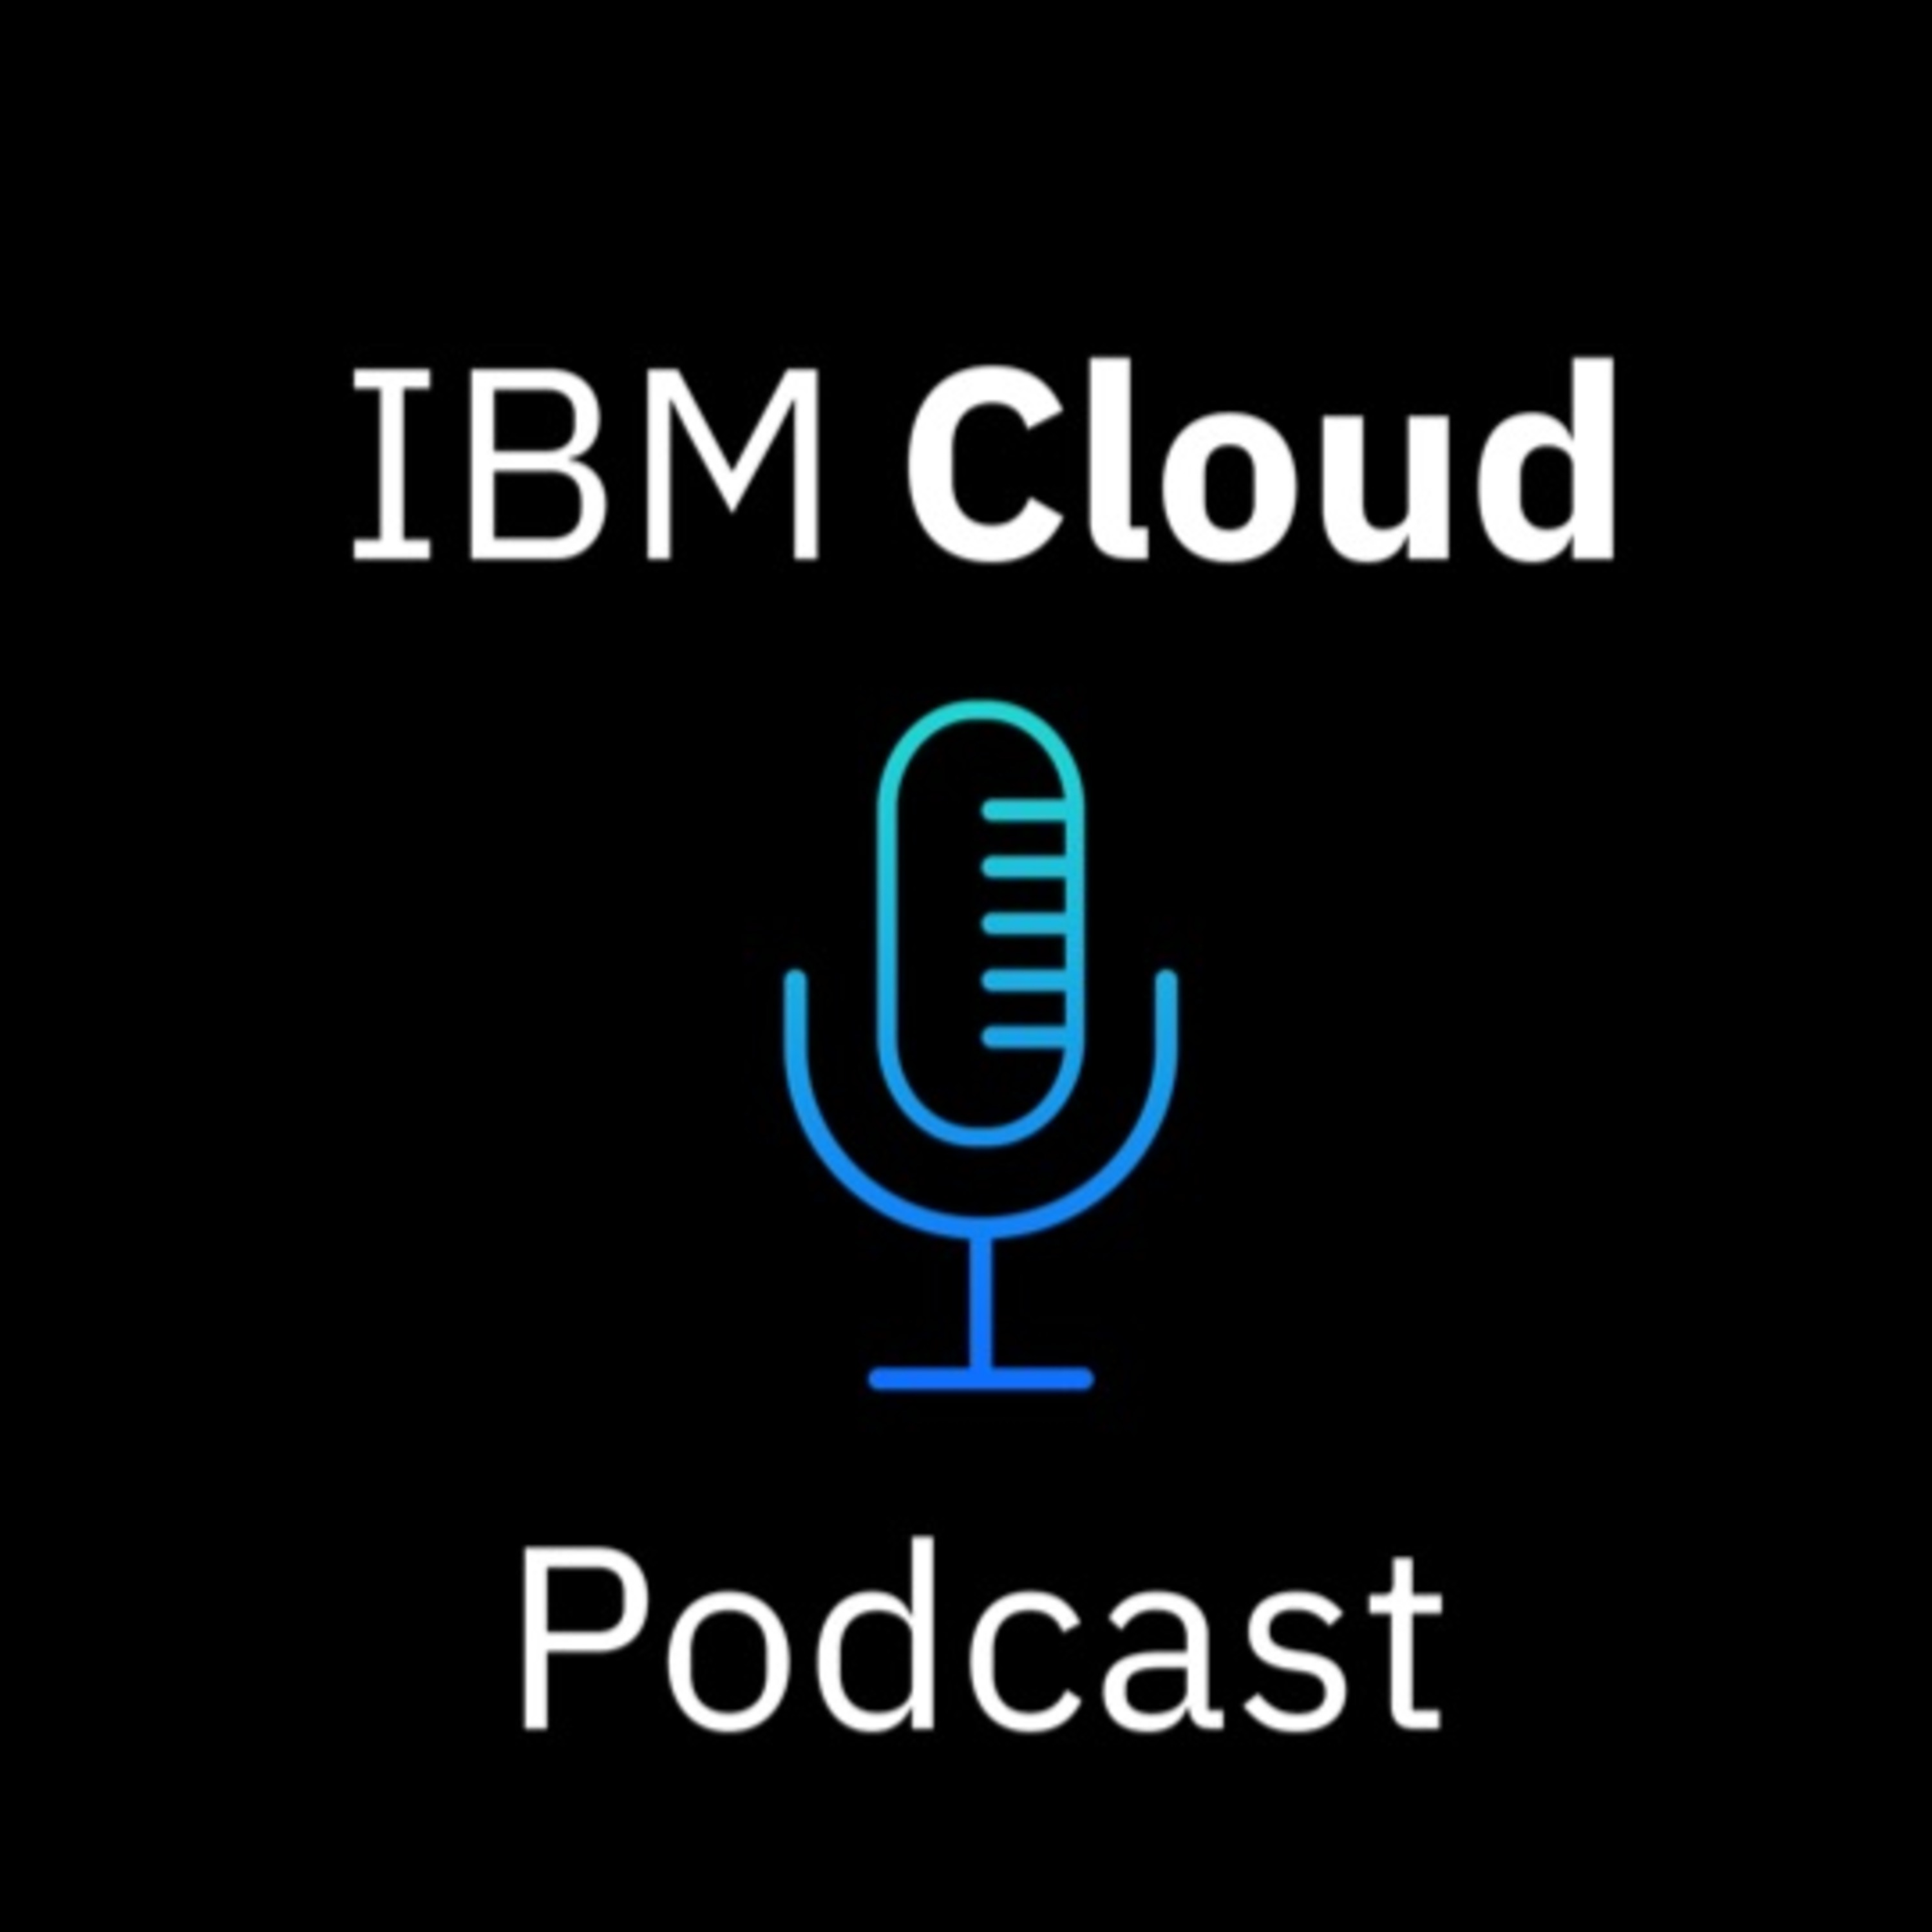 VMware and RedHat and IBM Cloud